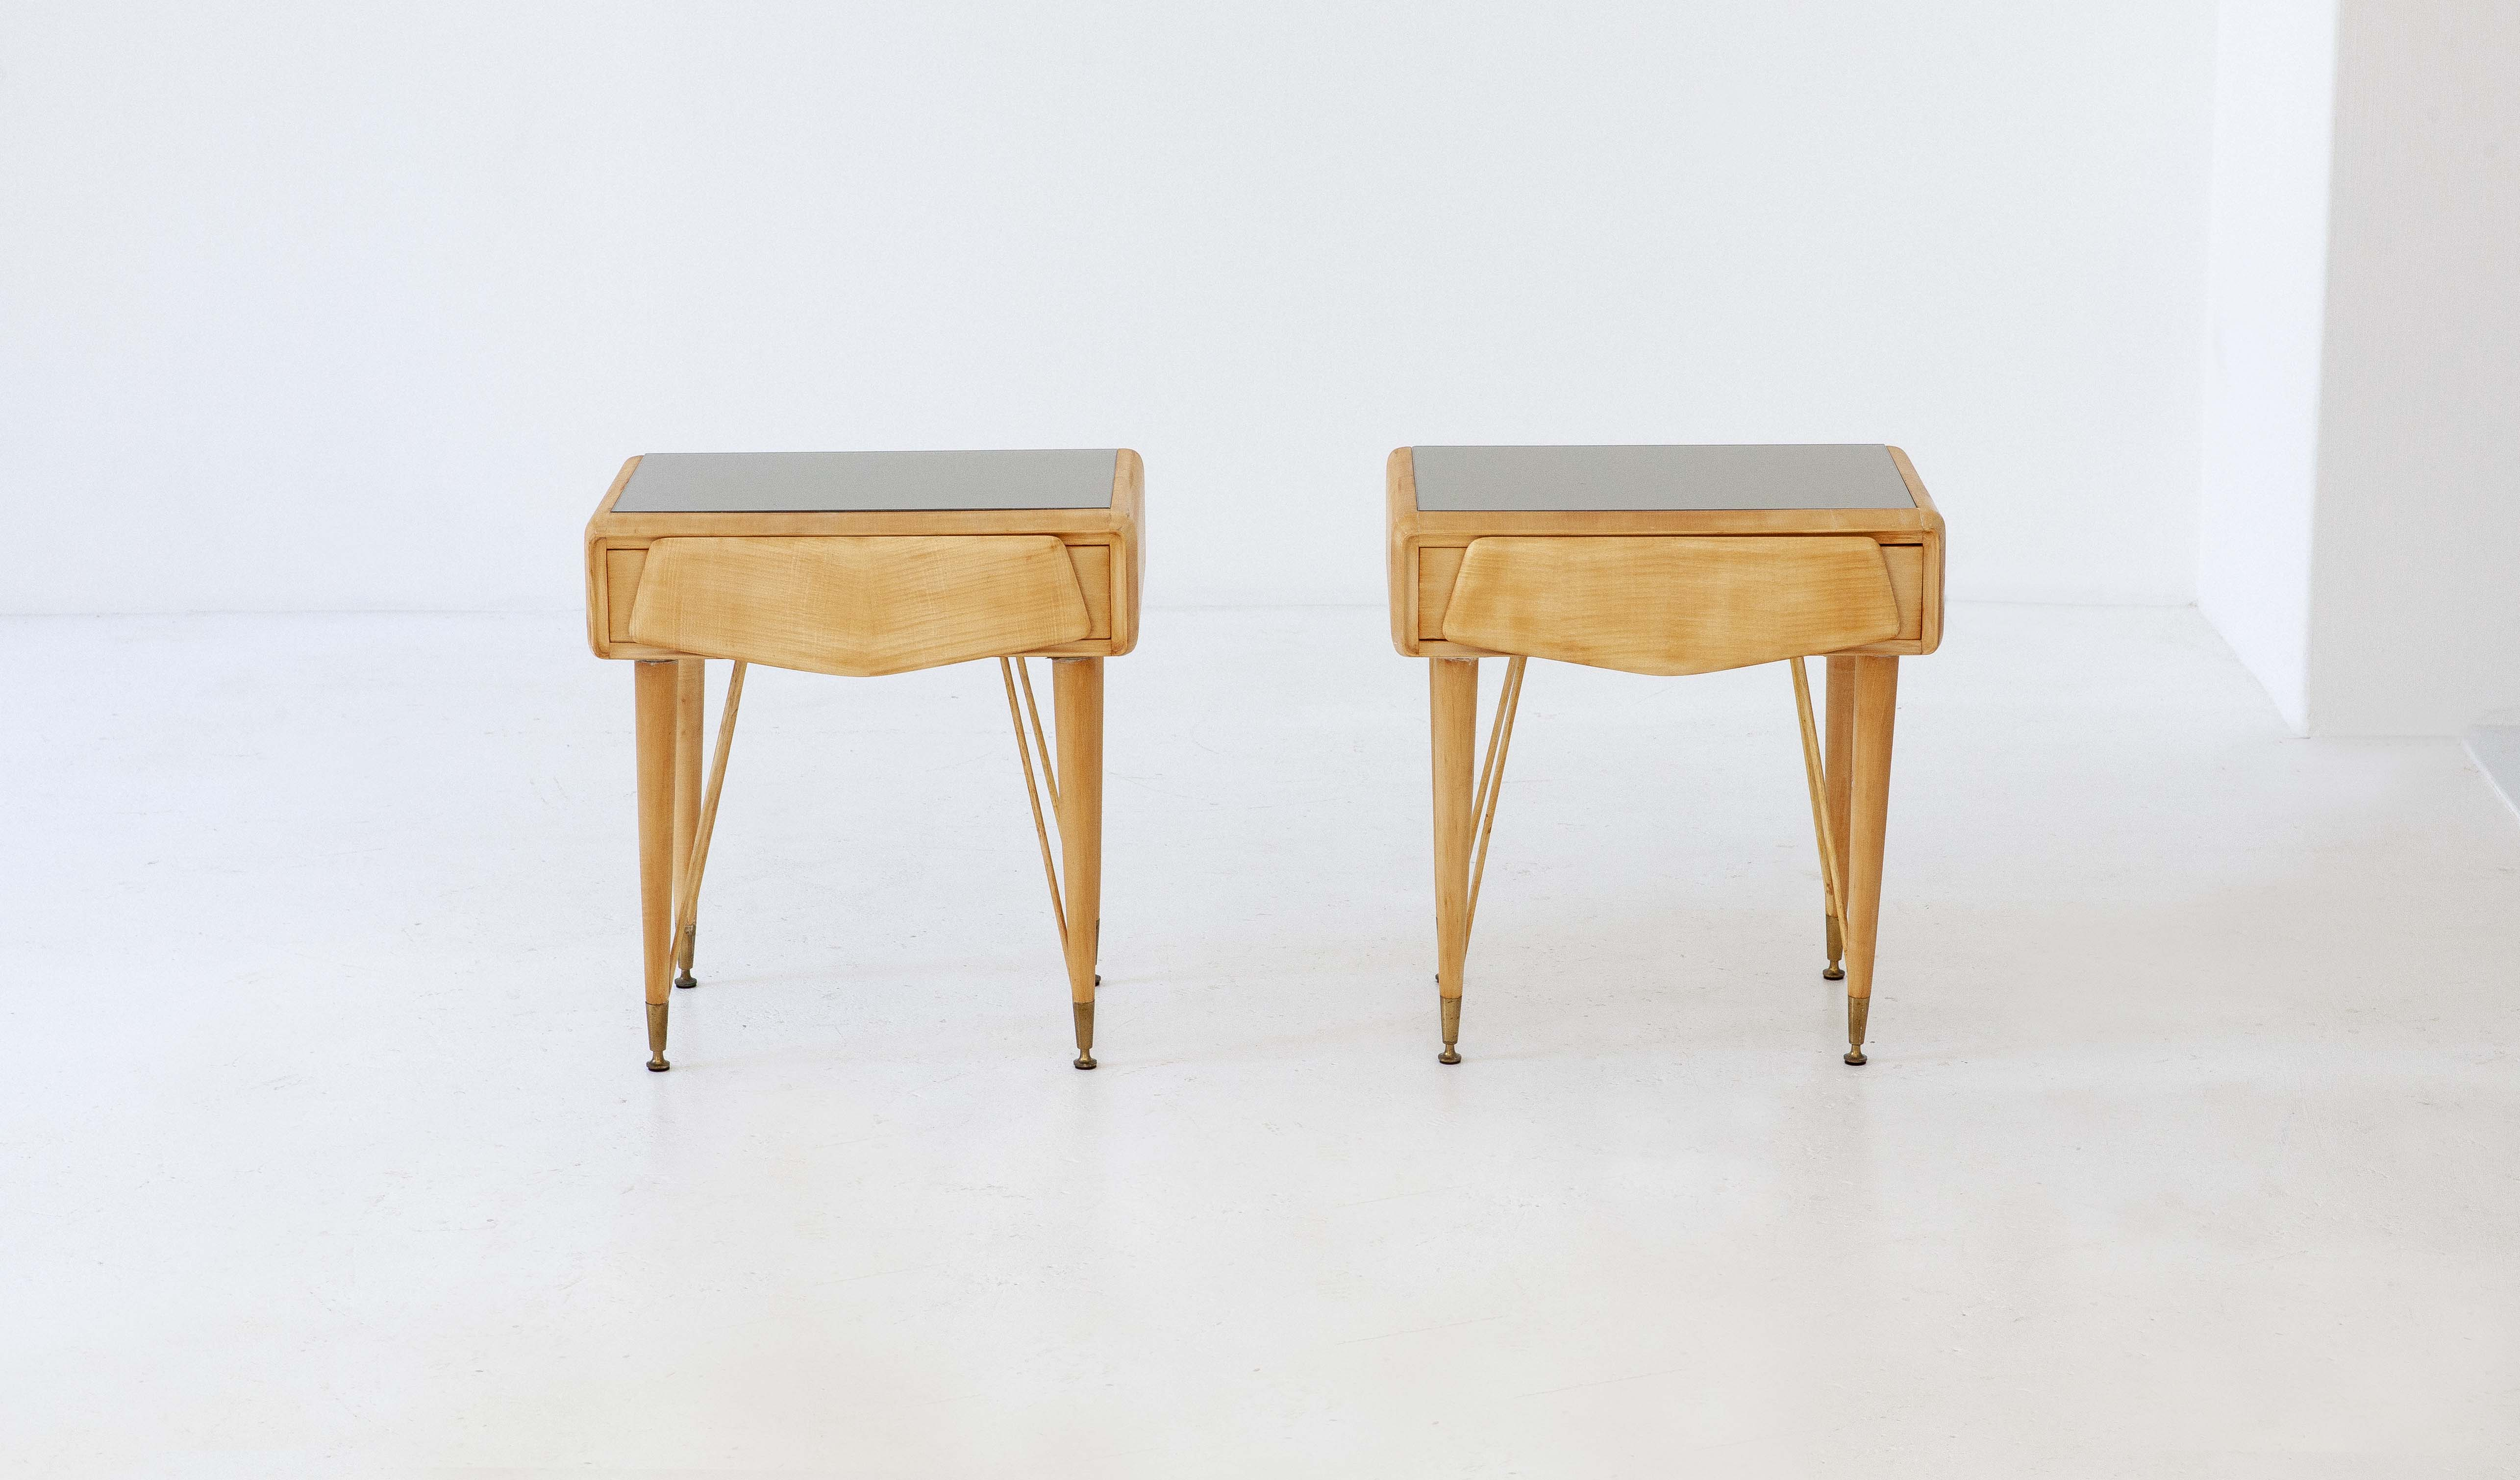 italian-mable-wood-glass-brass-bedside-tables-7-BT77